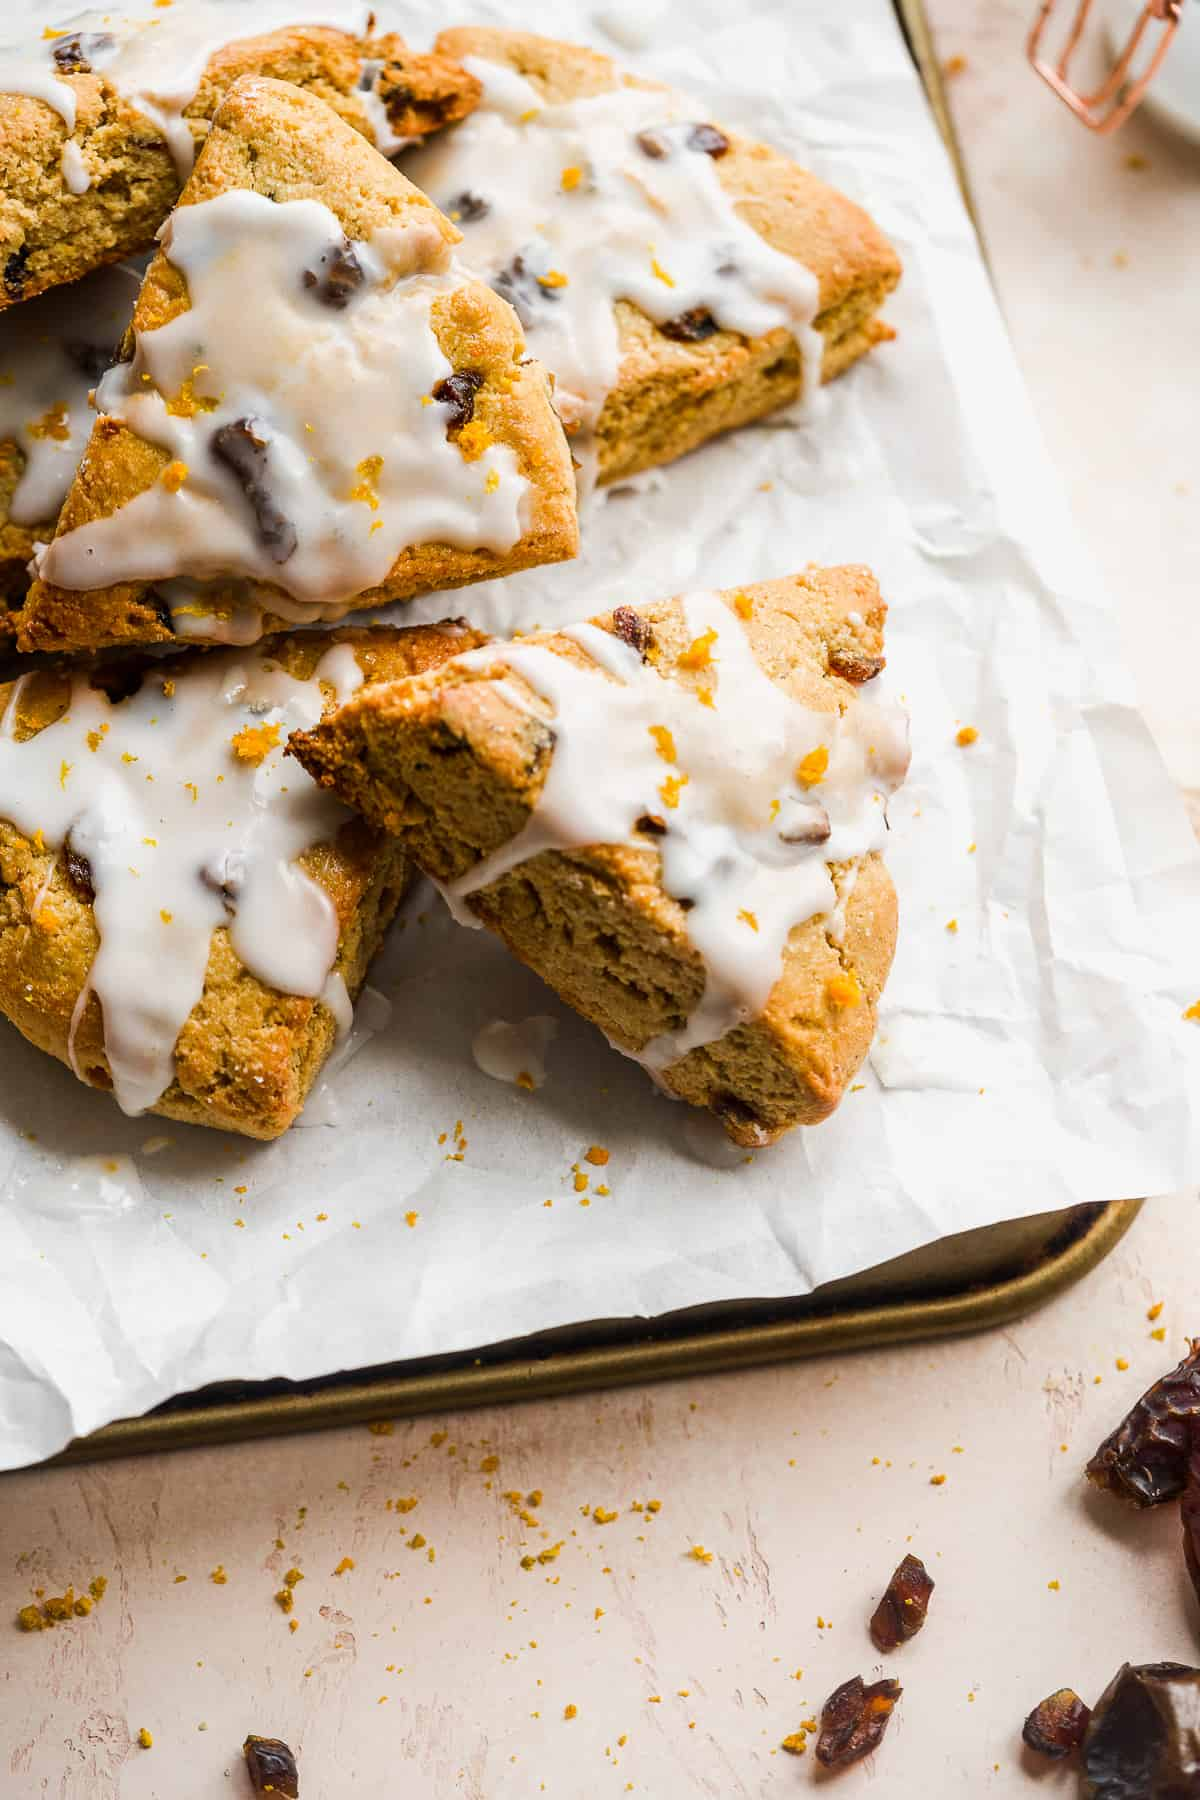 Triangular scones scattered in a pile on white parchment paper.